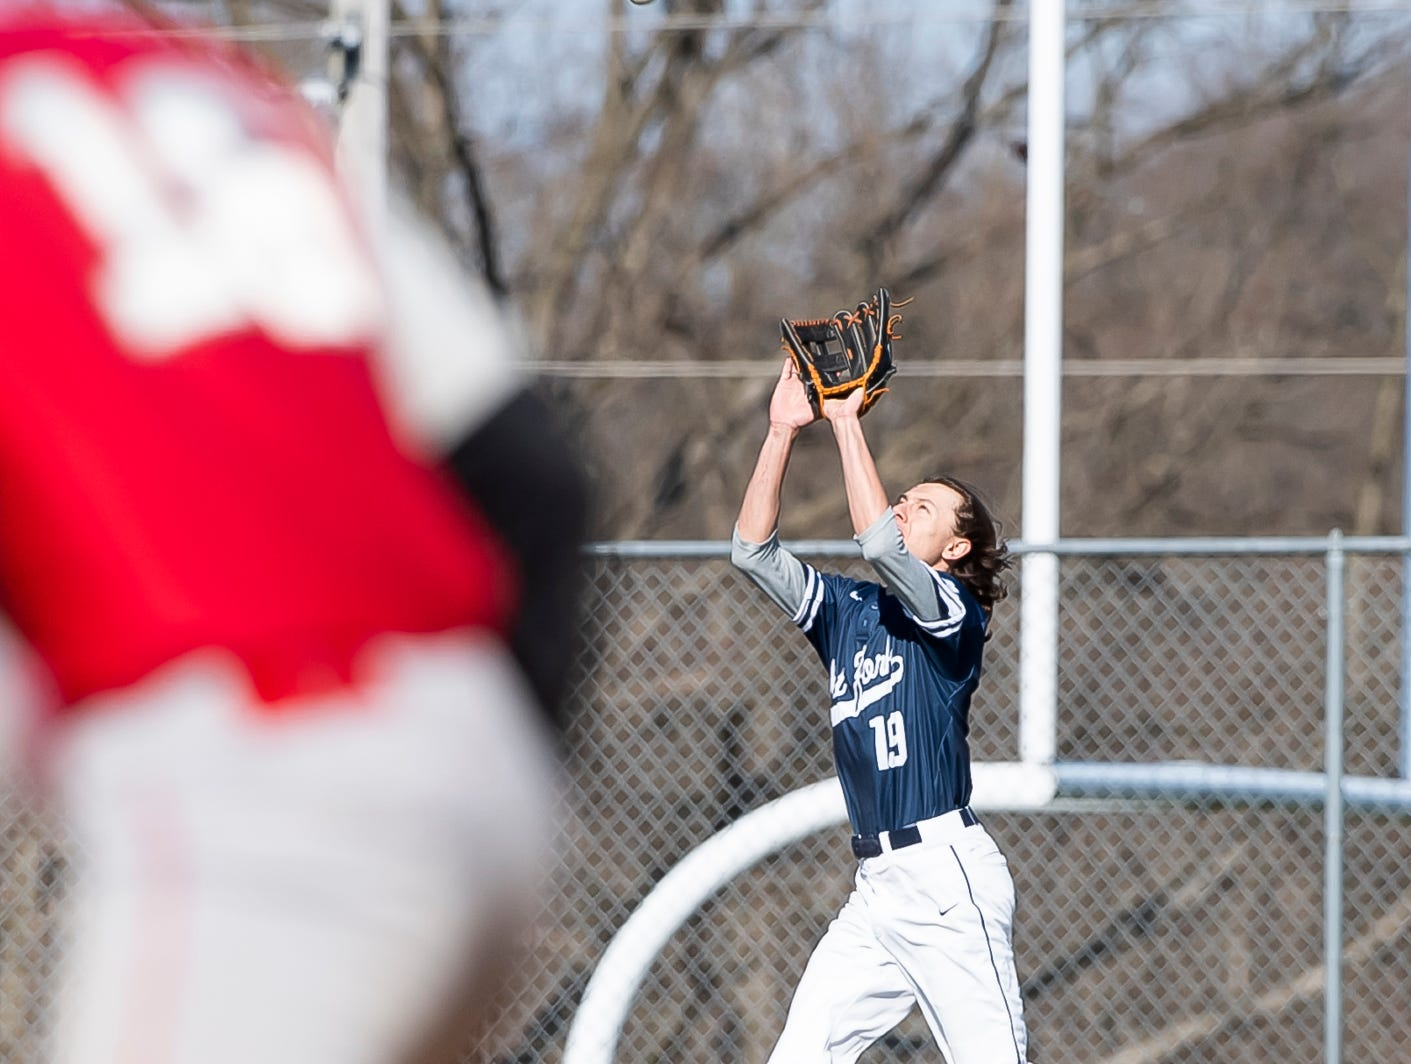 West York outfielder Christian Fletcher catches a fly ball to record an out during a YAIAA baseball game against Bermudian Springs on Wednesday, April 3, 2019. The Bulldogs won 14-11.